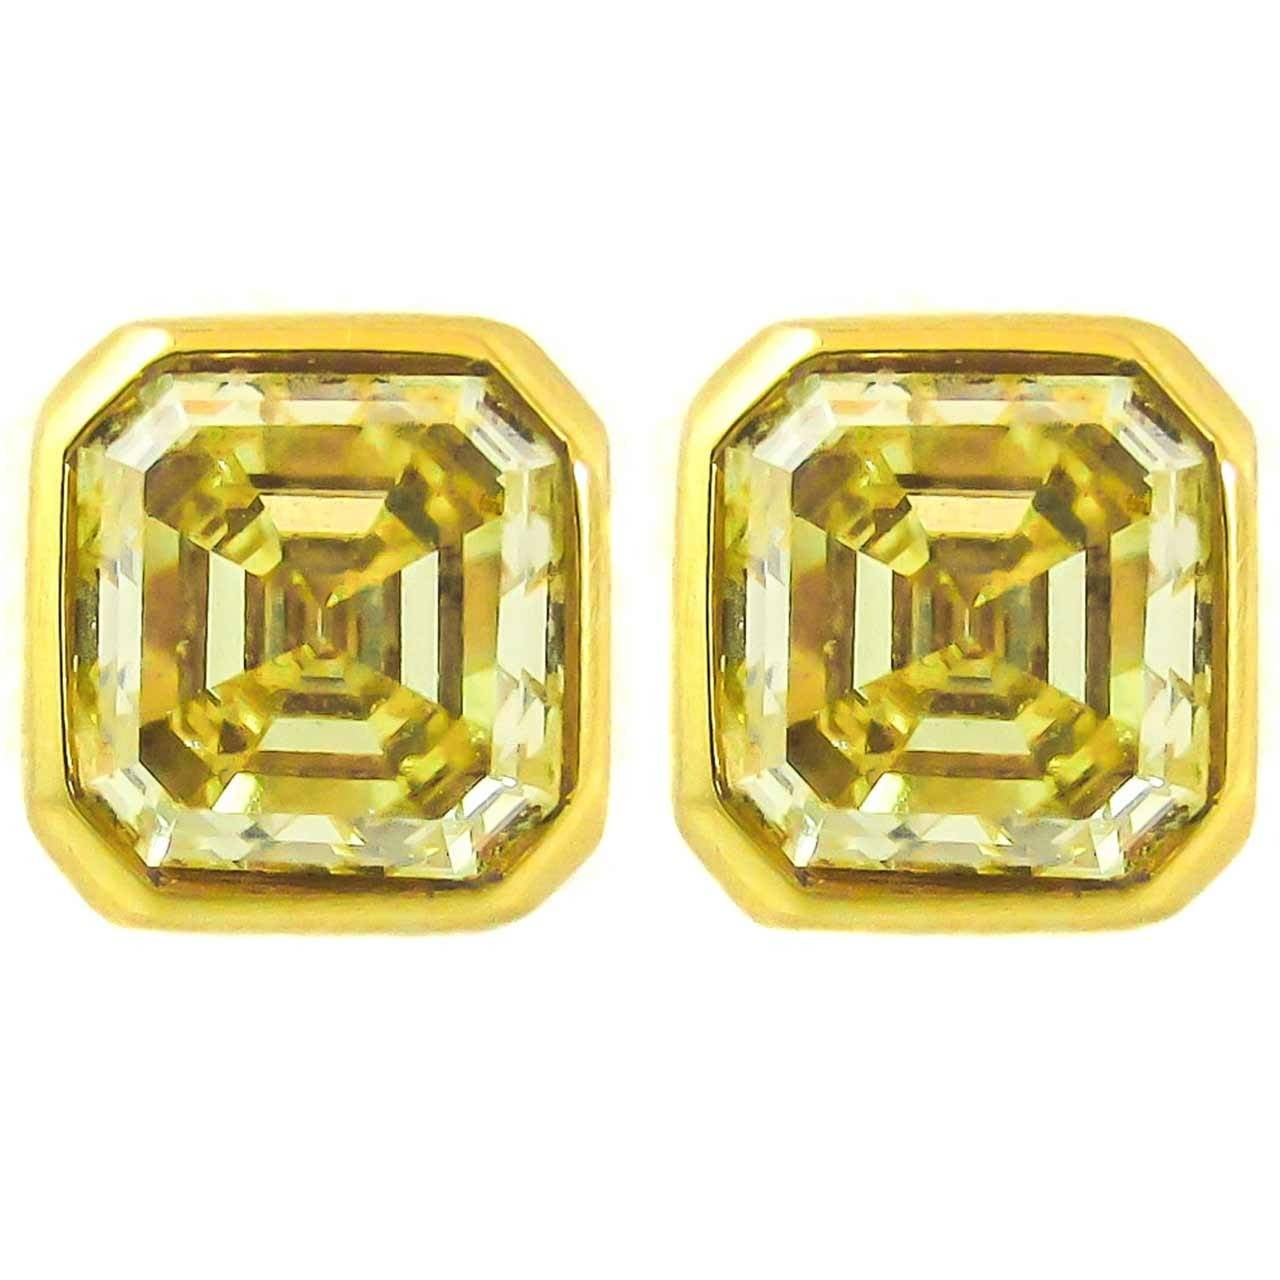 stud earrings yellow gold round backs screw brilliant diamond